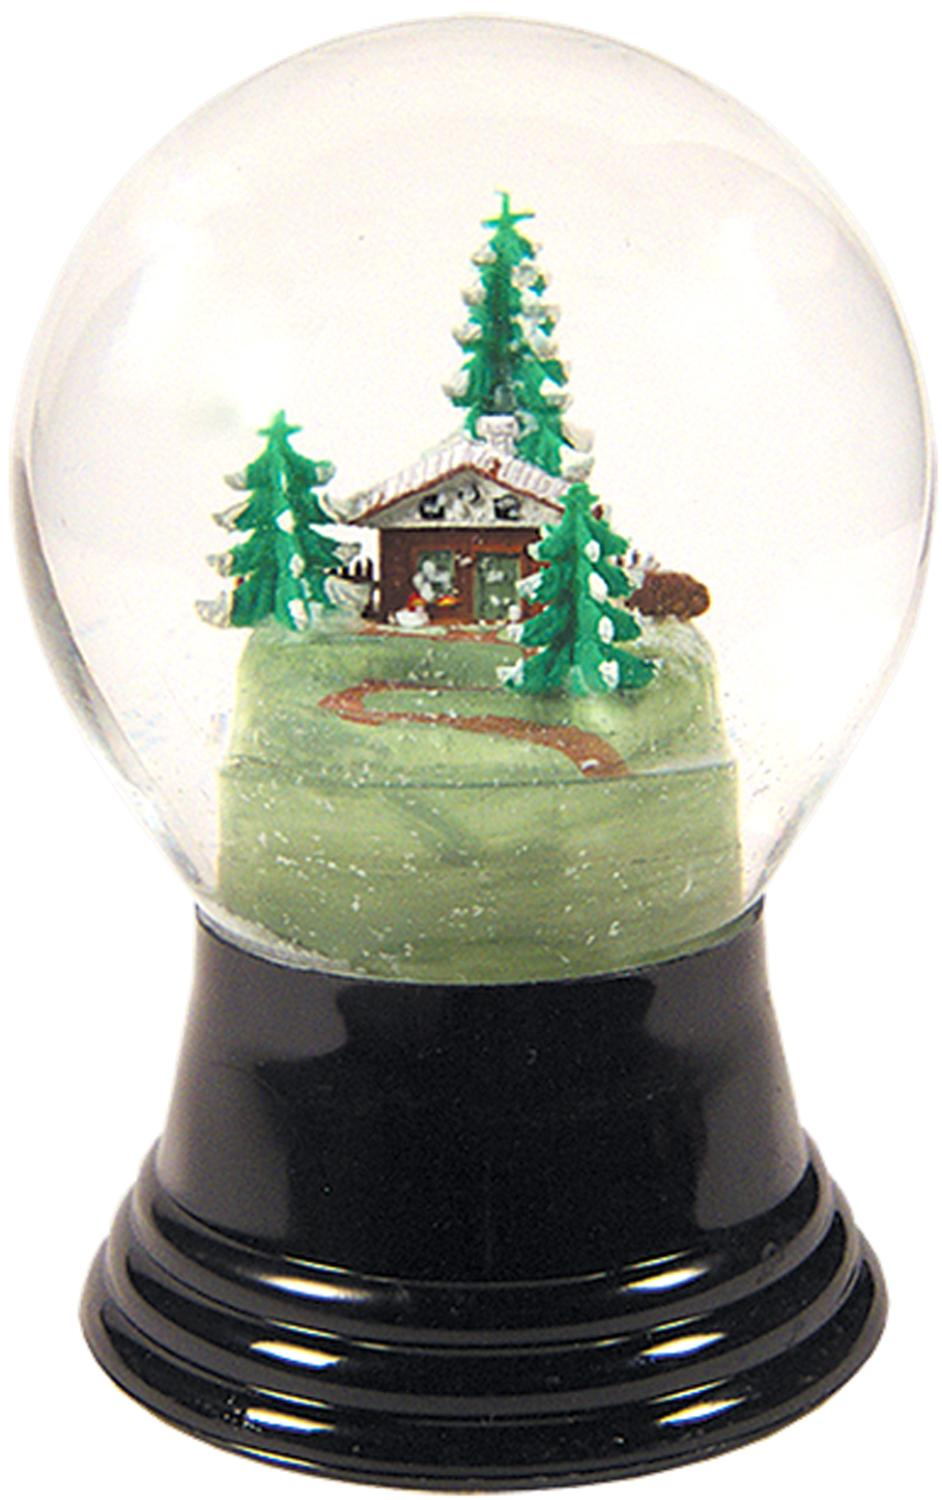 PR1409 - Perzy Snowglobe, Medium Chalet with Tree - 5